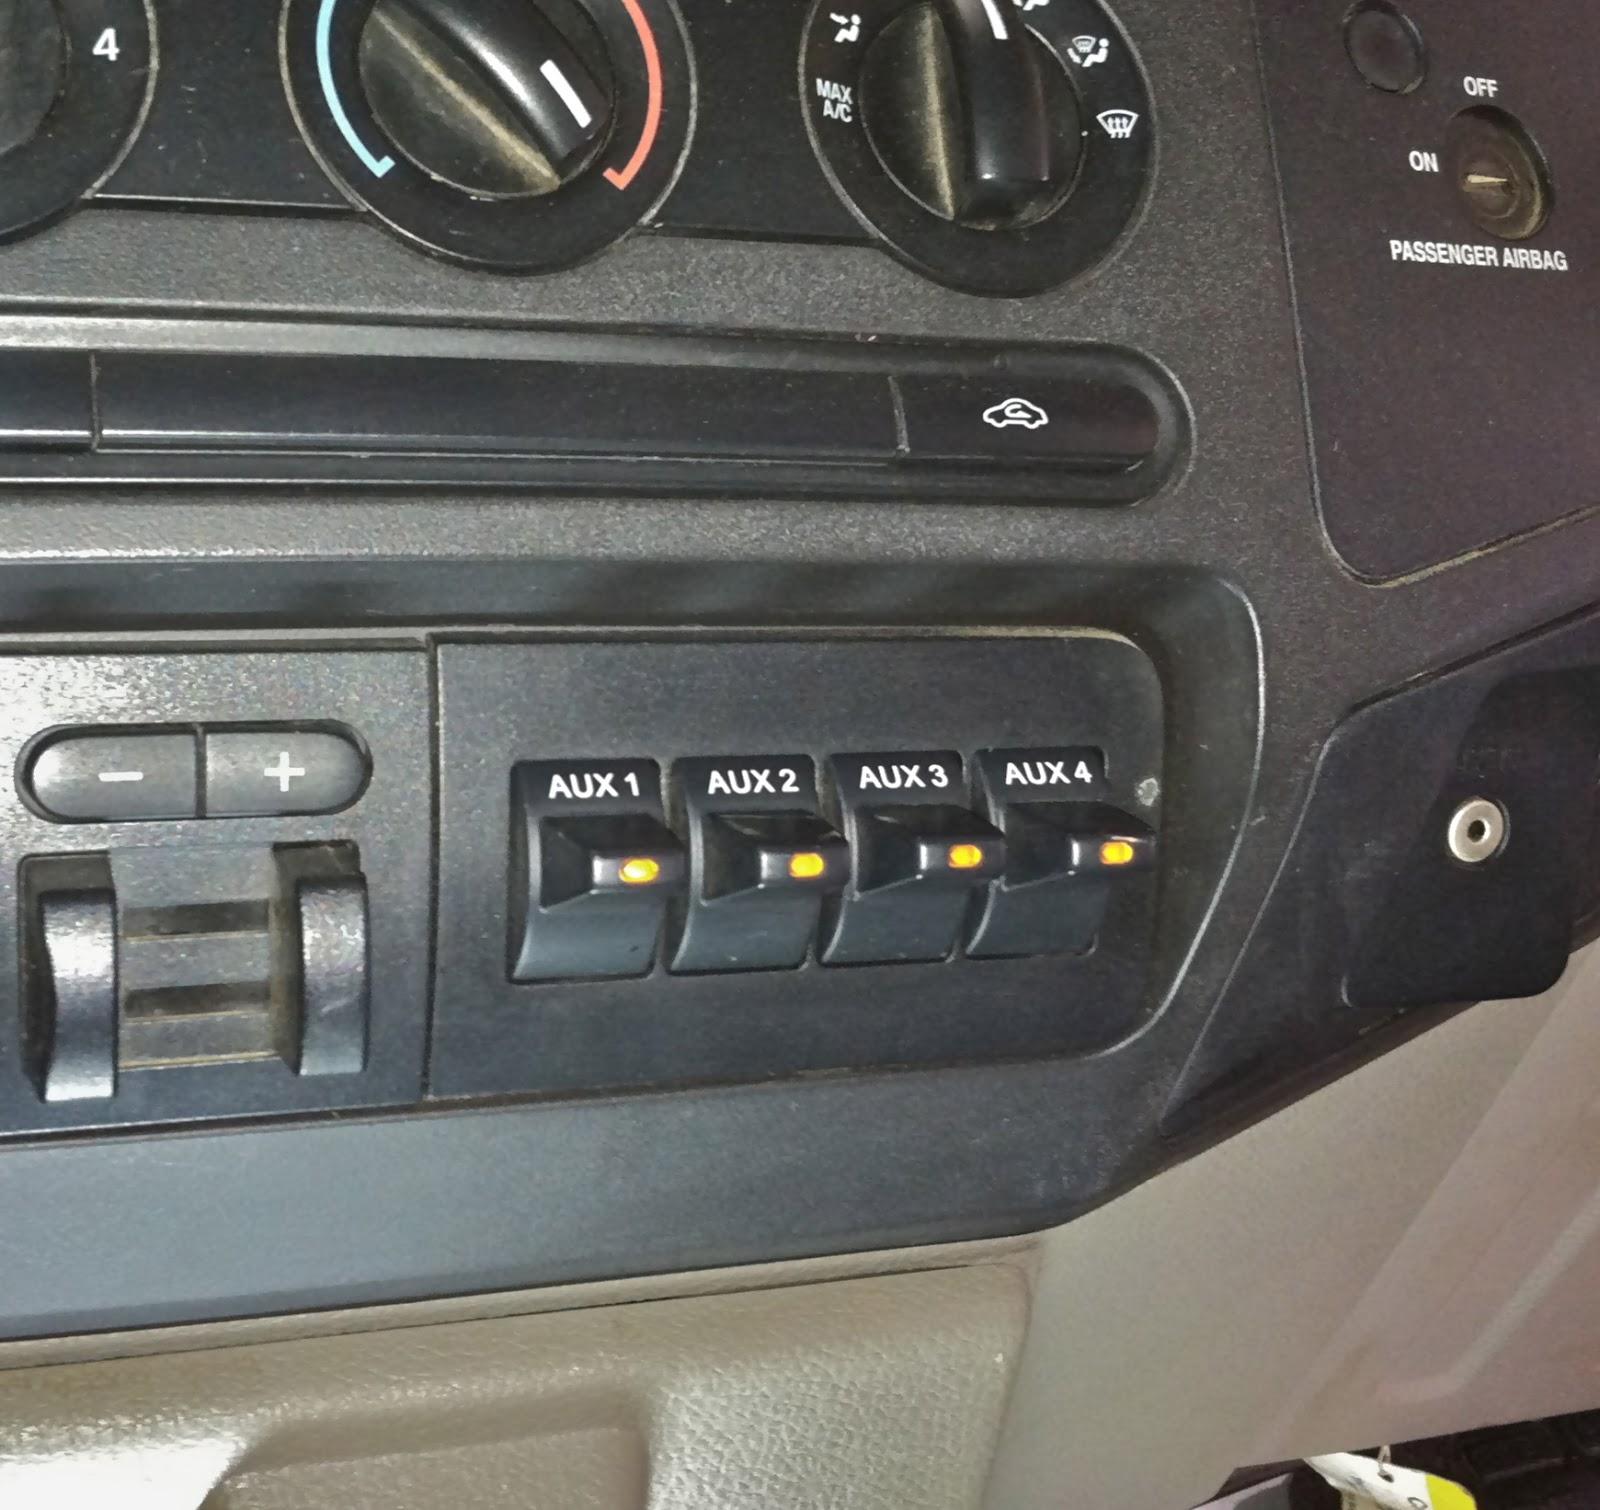 2012 ford f250 upfitter wiring diagram car audio tips tricks and how to s ford f series super 1992 ford f250 radio wiring diagram